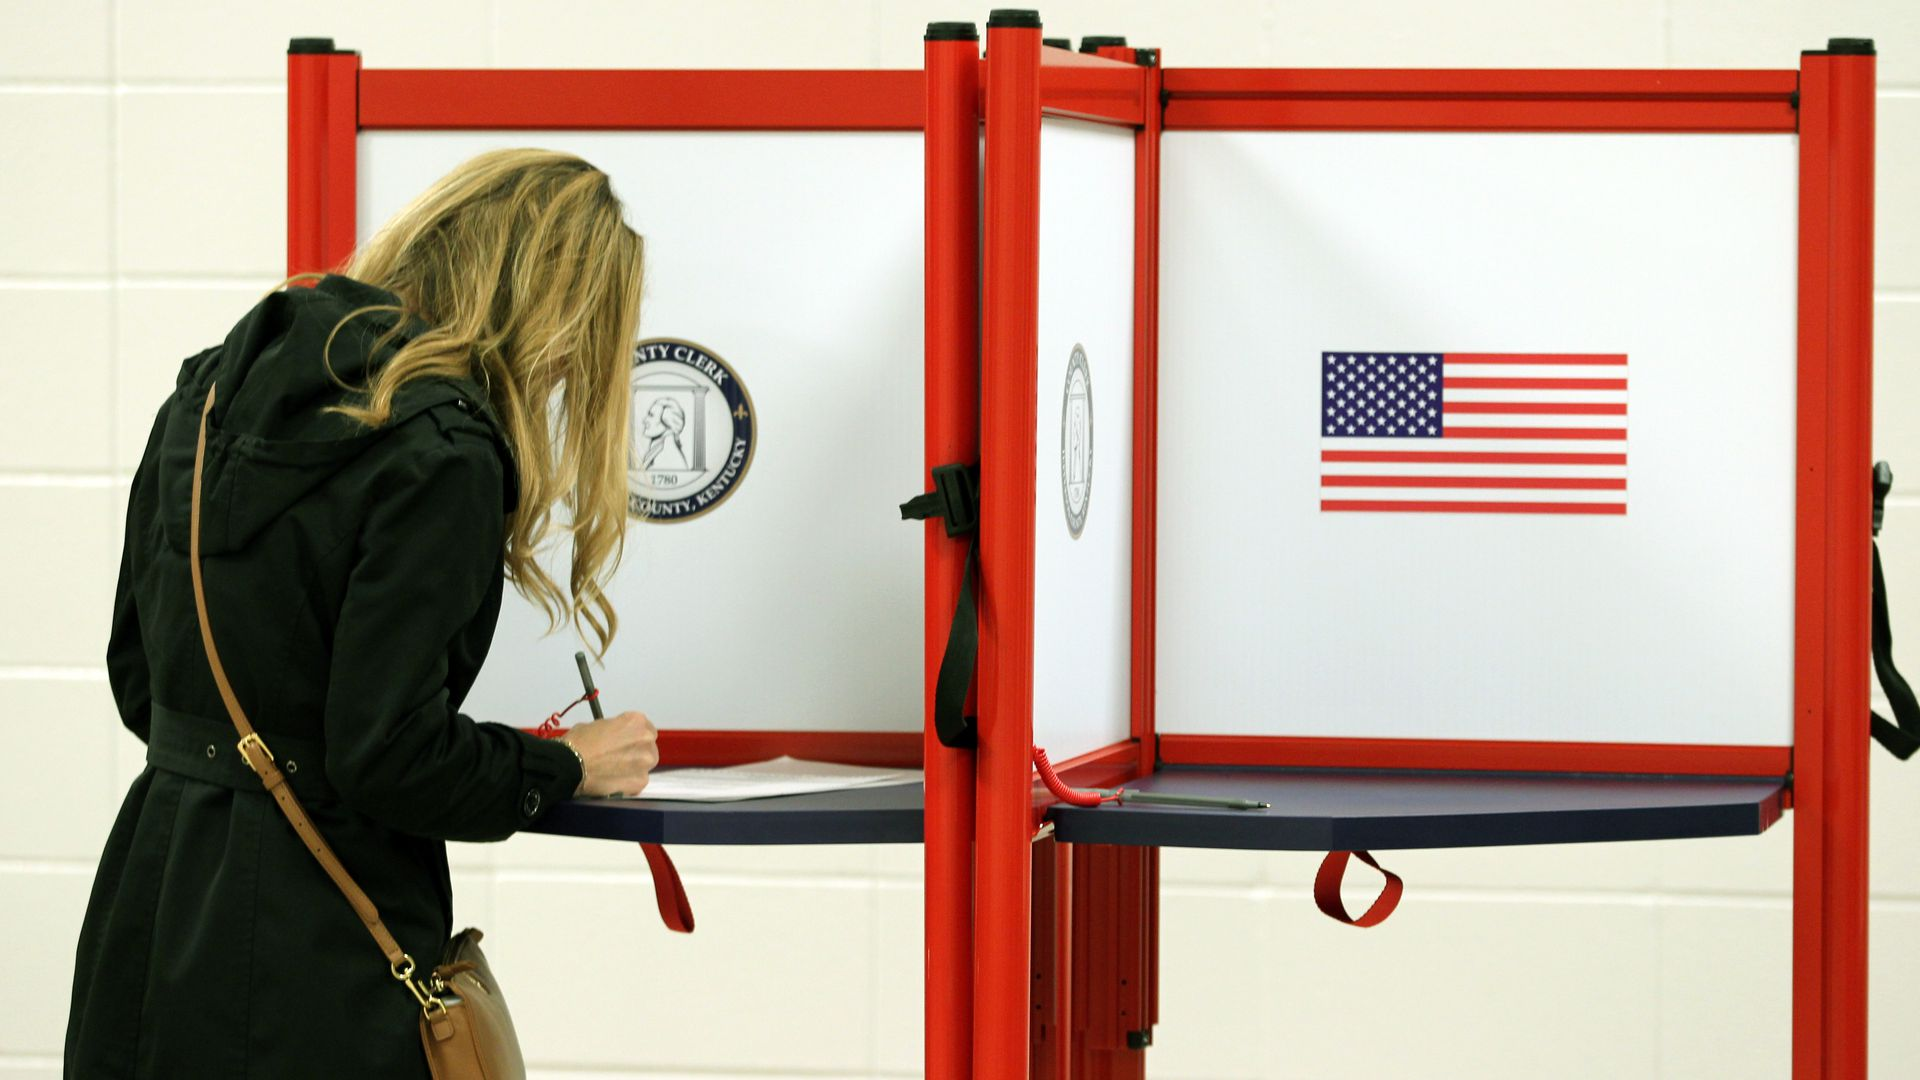 In this image, a woman leans over a voting booth